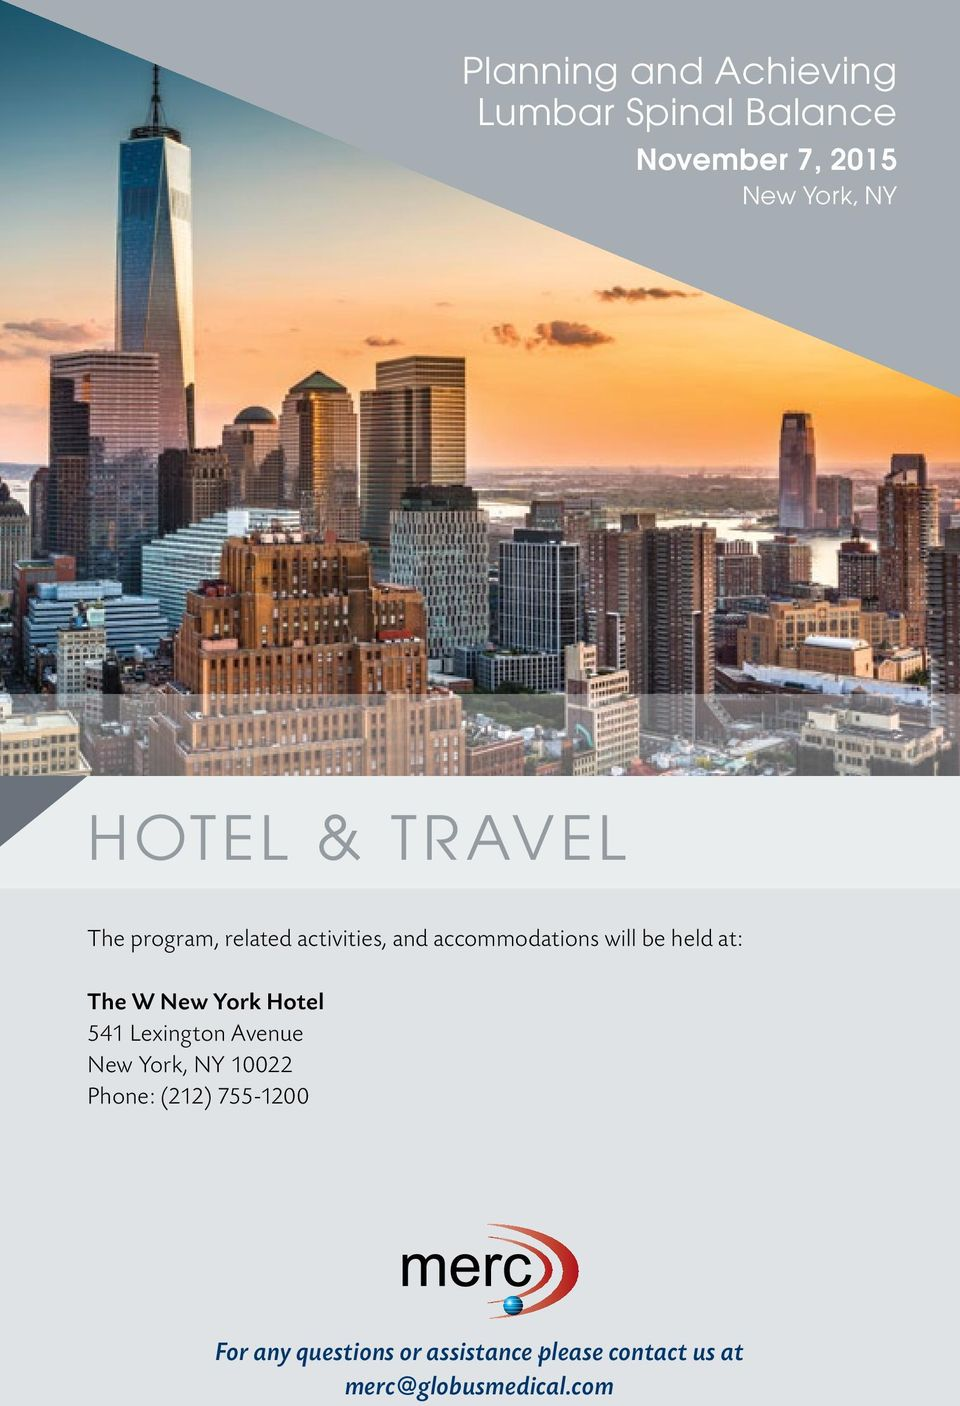 at: The W New York Hotel 541 Lexington Avenue New York, NY 10022 Phone: (212)